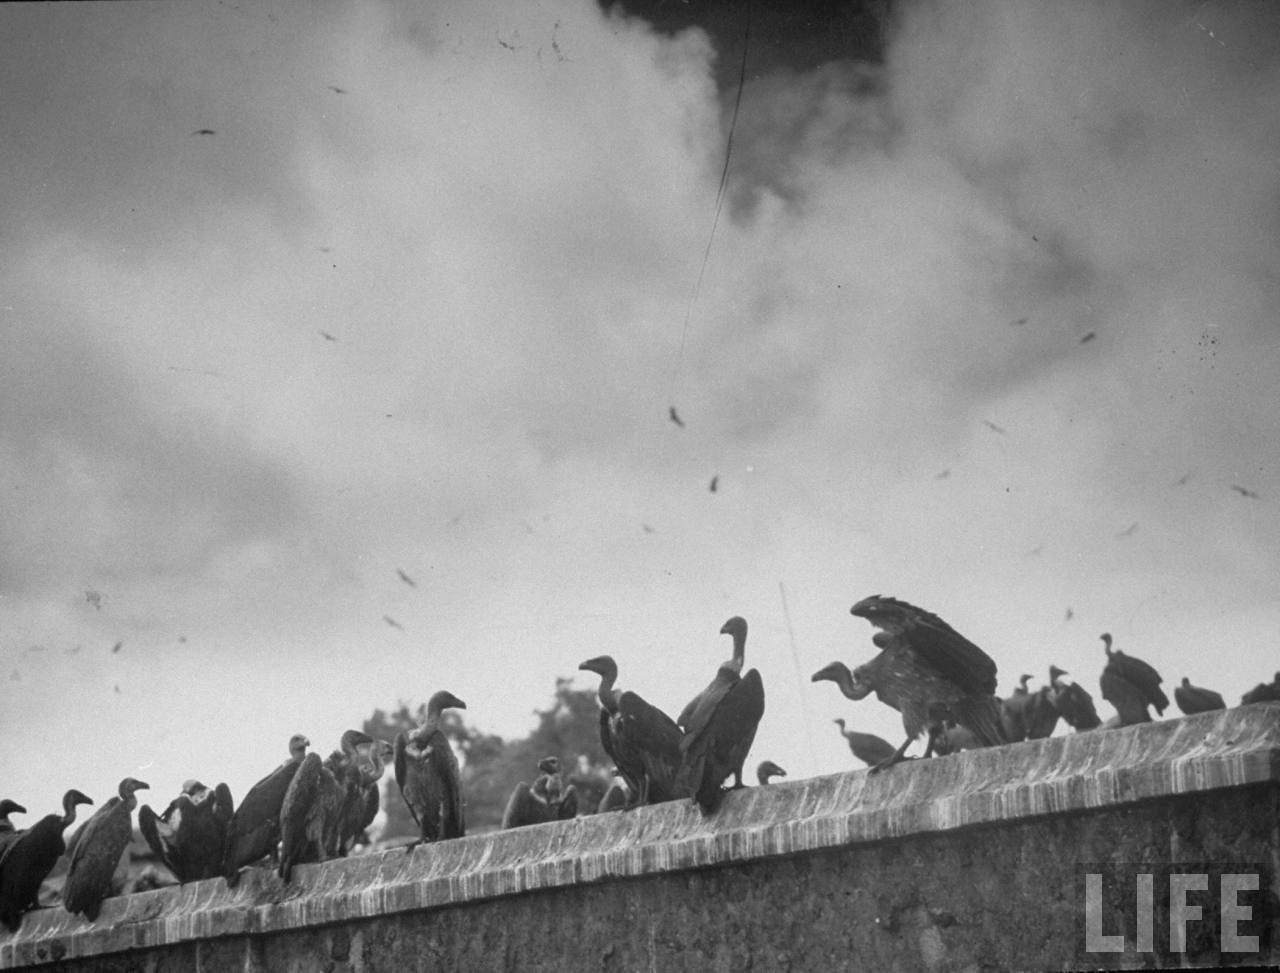 Vultures sitting on the roofs of a building while corpses lie below, abandoned in alleyway after bloody rioting